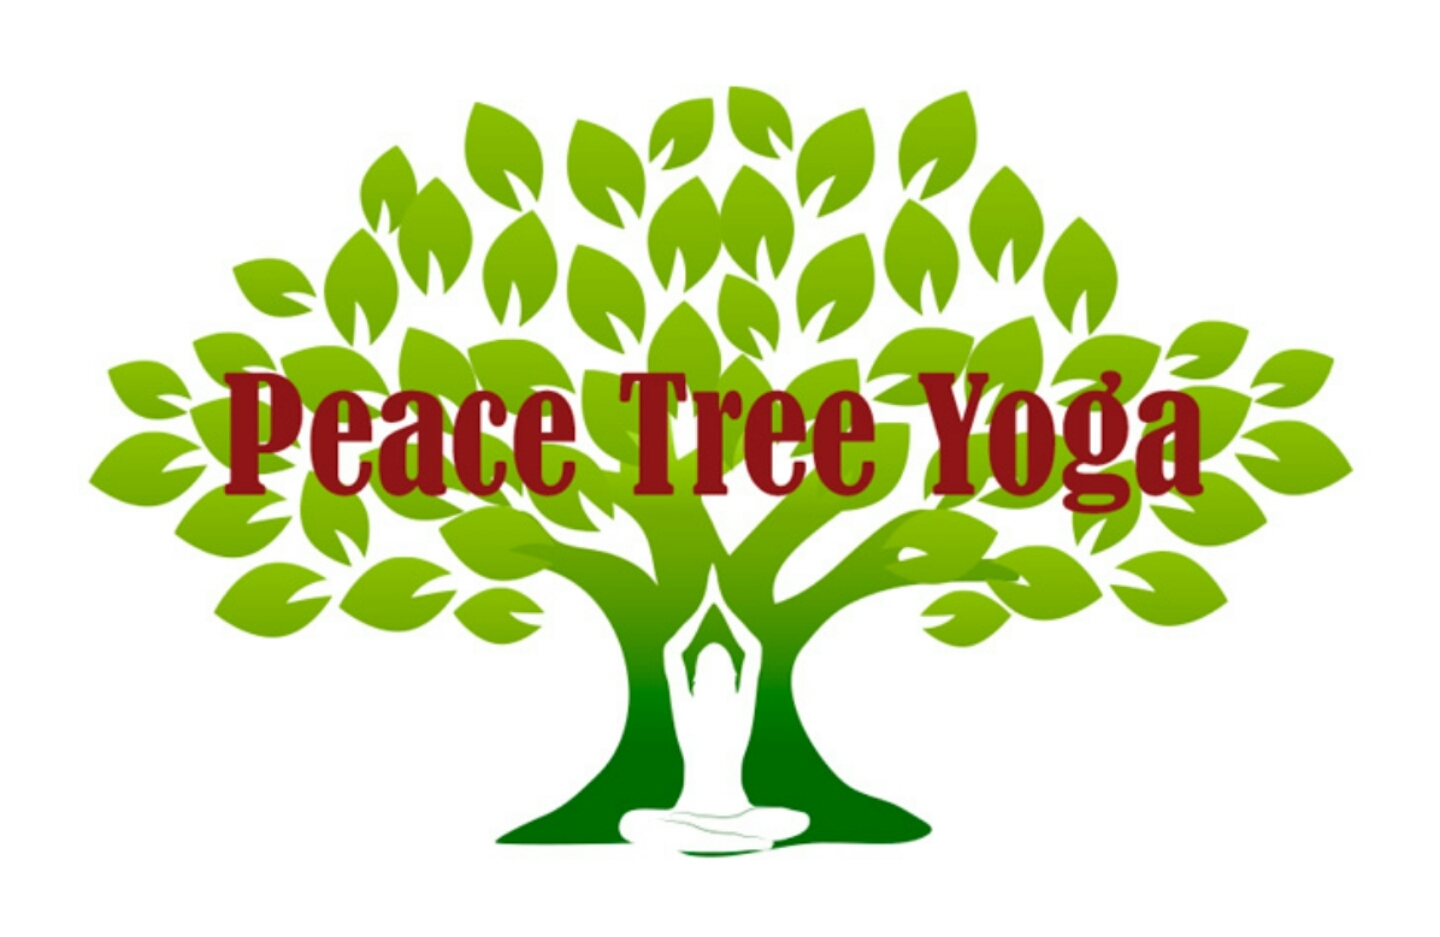 Peace Tree Yoga